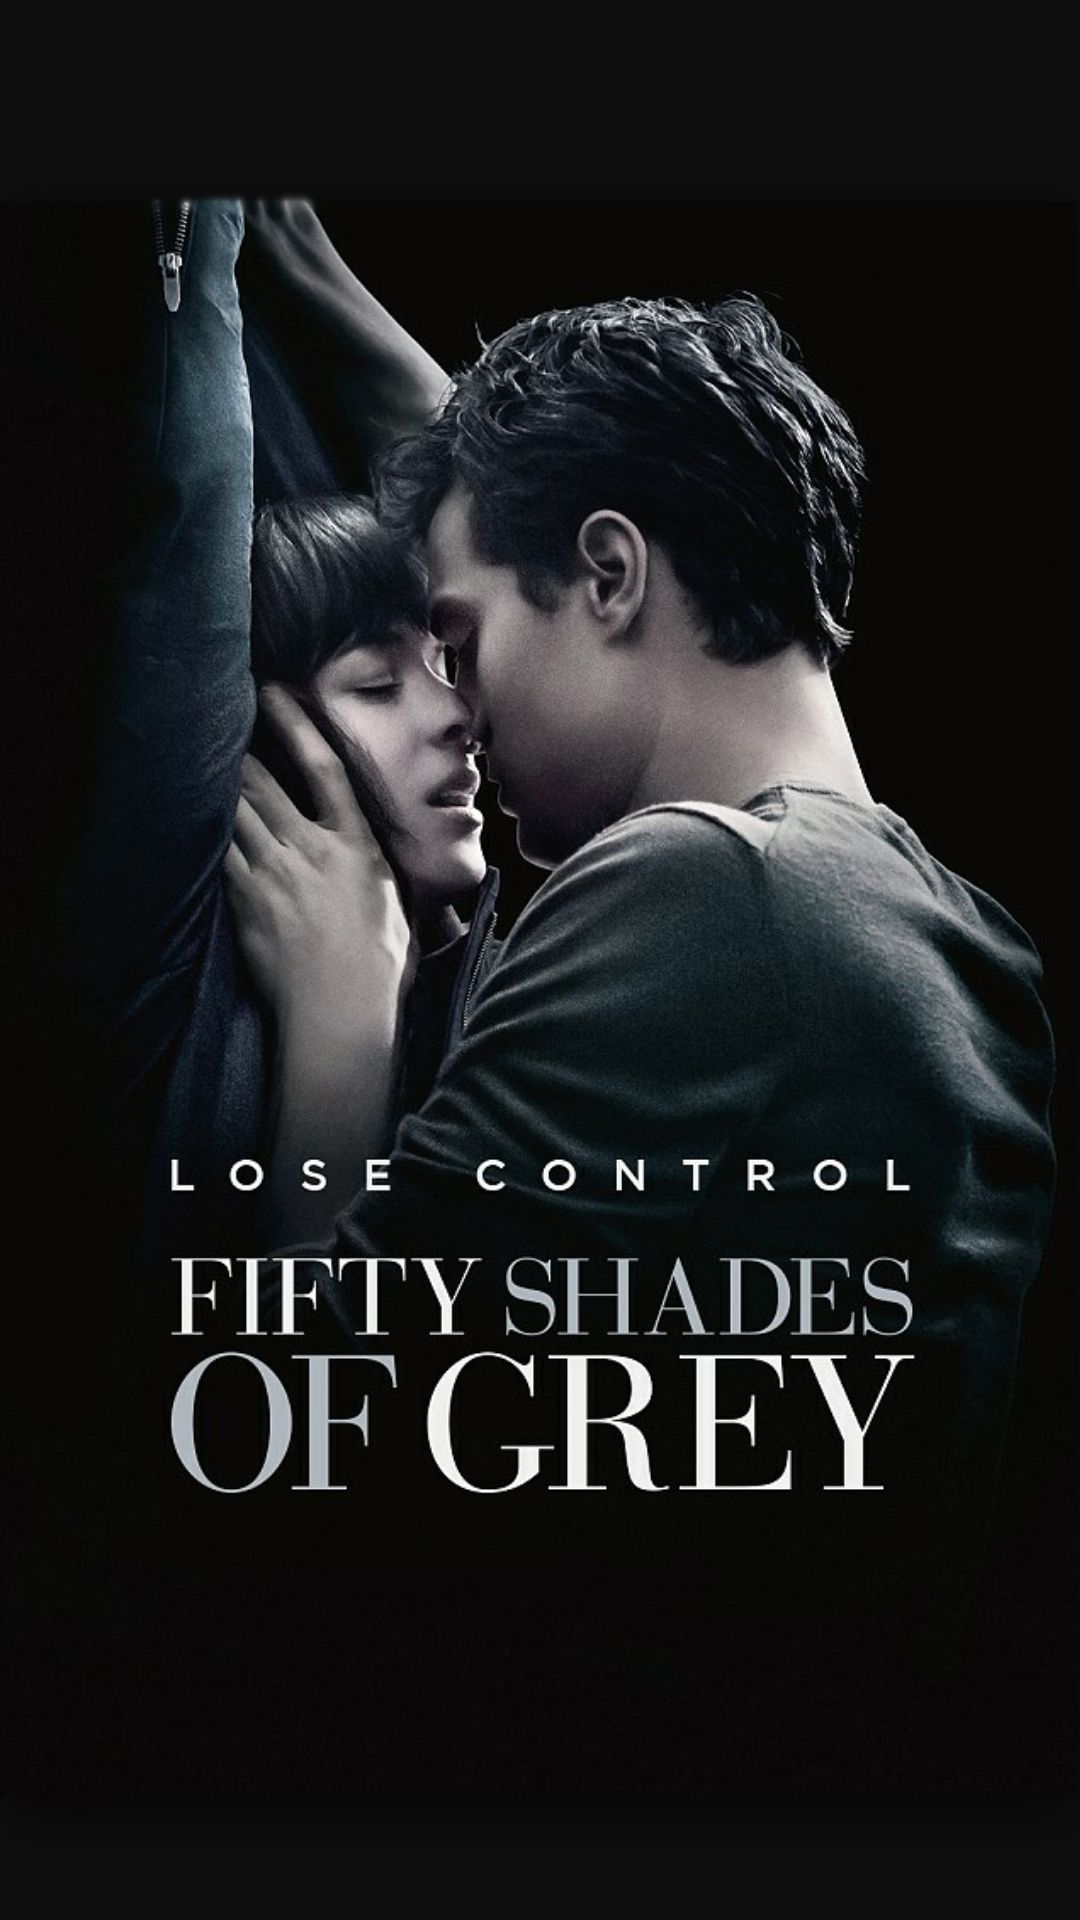 ↑↑TAP AND GET THE FREE APP! Movies Fifty Shades Of Grey Lose Control  Christian Grey Anastasia Steele Black Girly Poster Blockbuster BDSM Kiss  Romantic ...